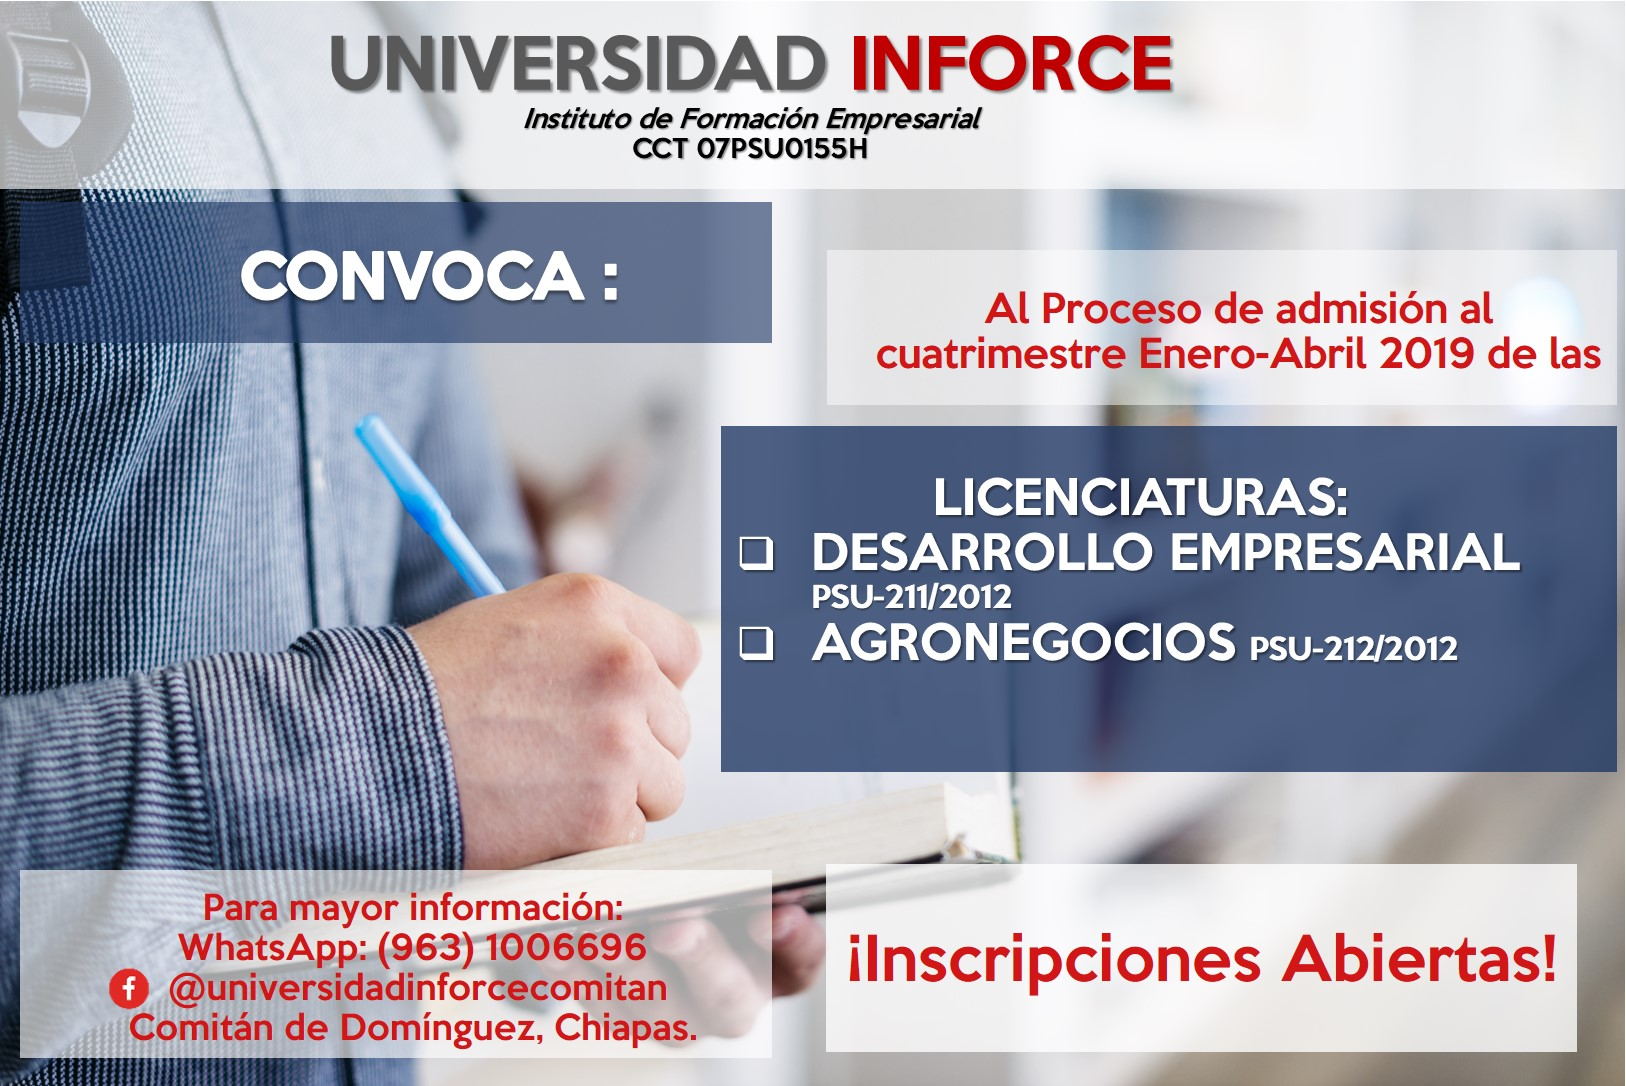 universidad-inforce-admision-enero-2019.jpg